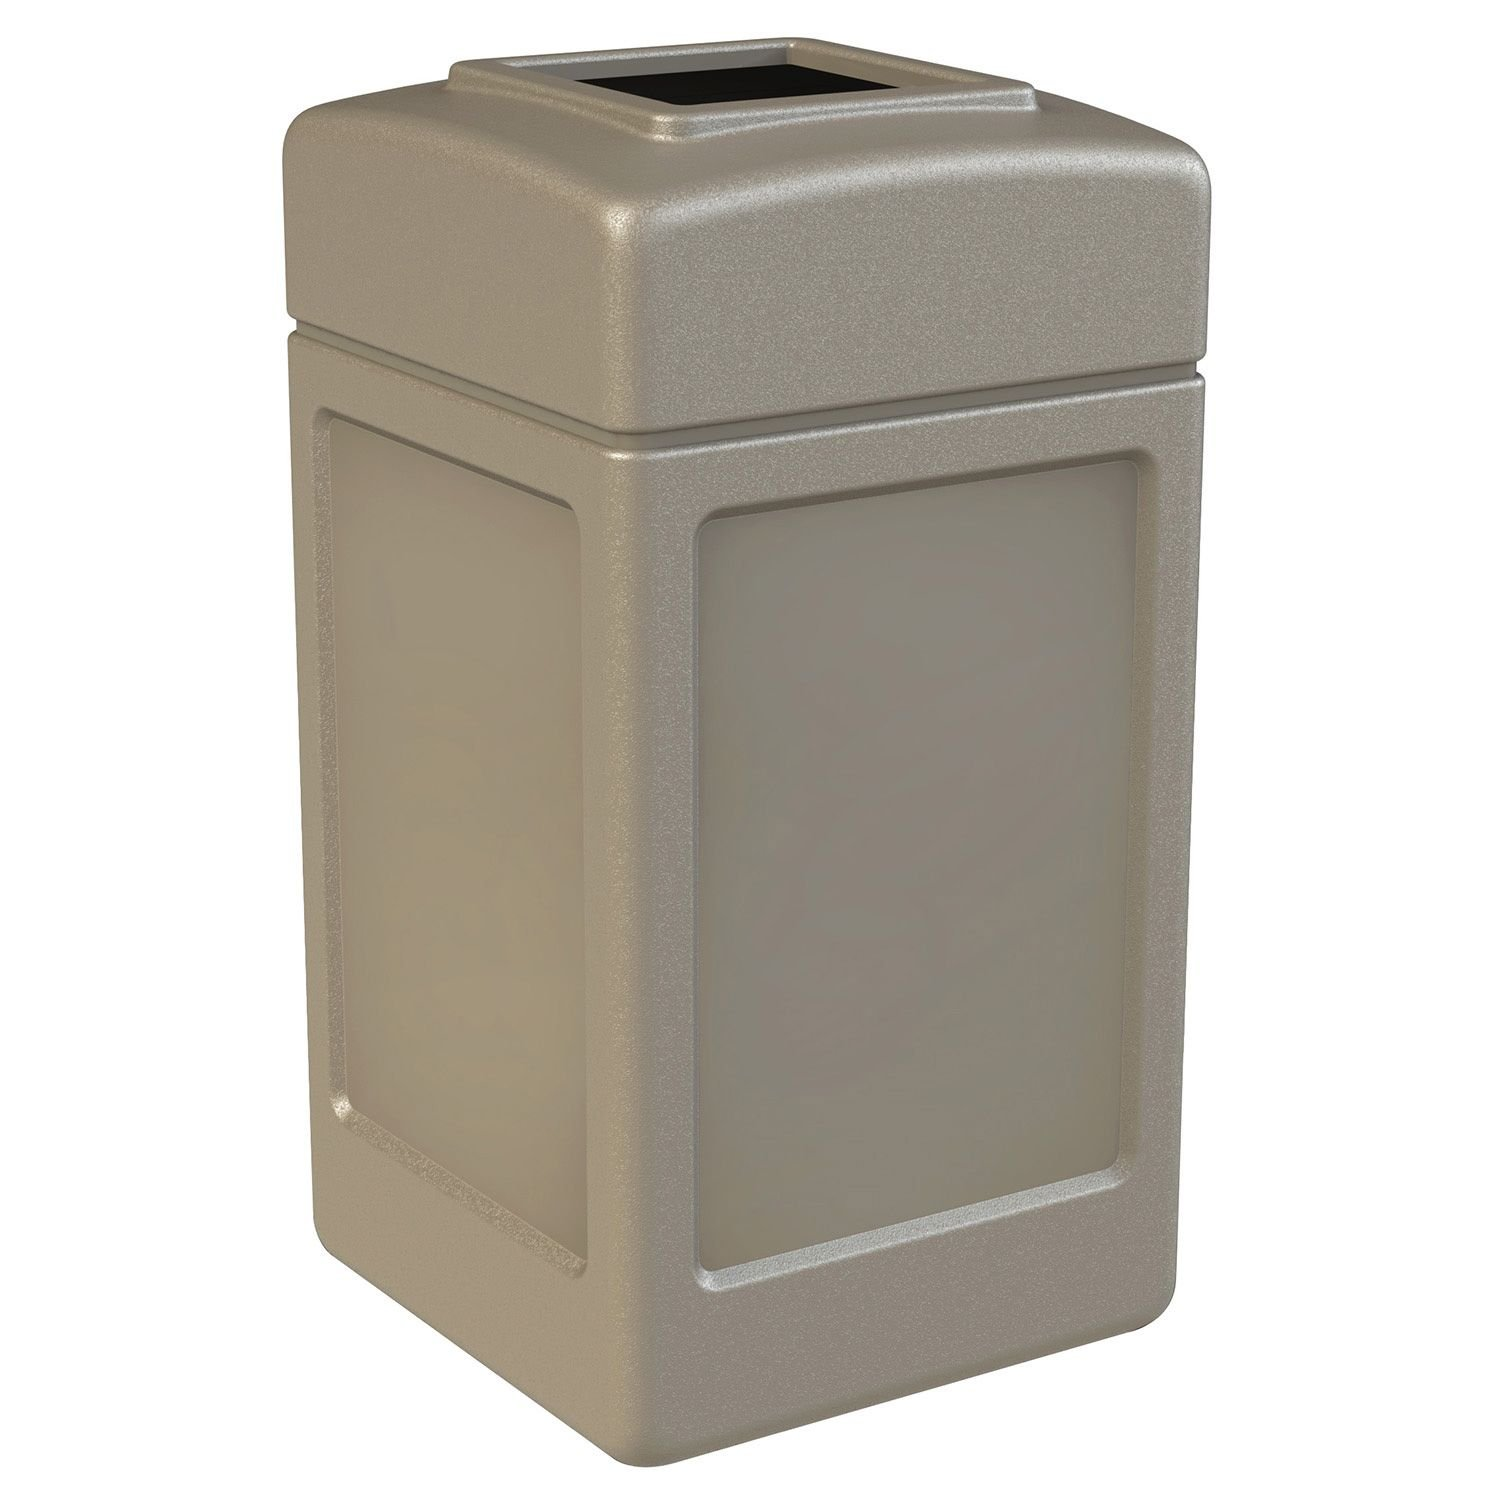 Commercial Zone Square Waste Receptacle, 42 Gallon, Beige